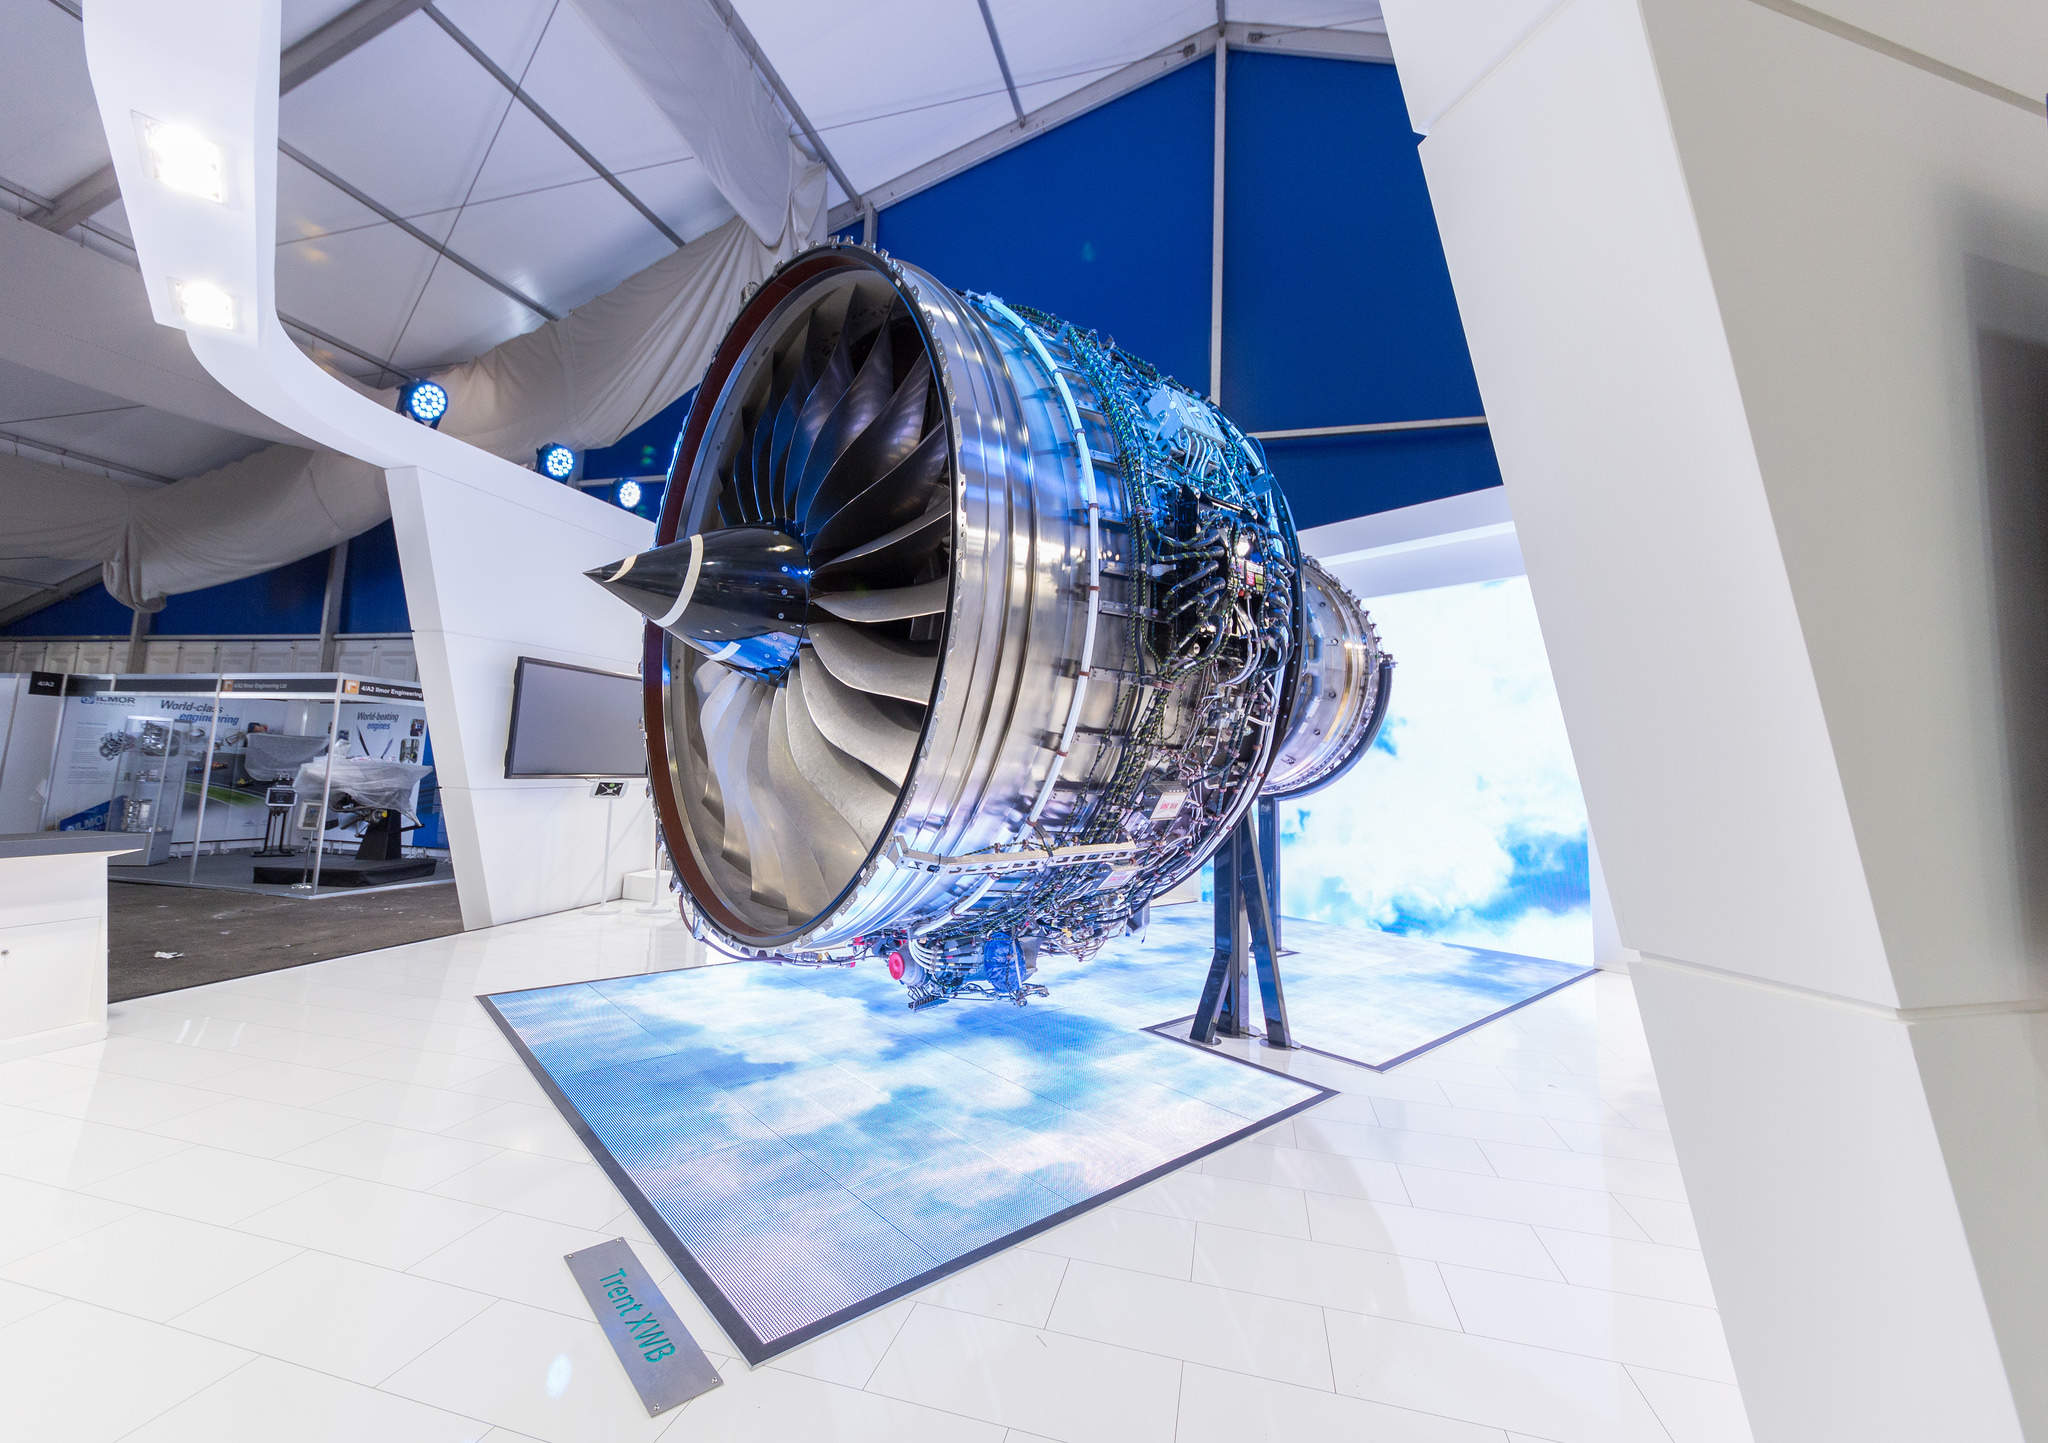 Rolls-Royce's contract is to maximise the number of engines available to power training missions. Courtesy Rolls Royce.